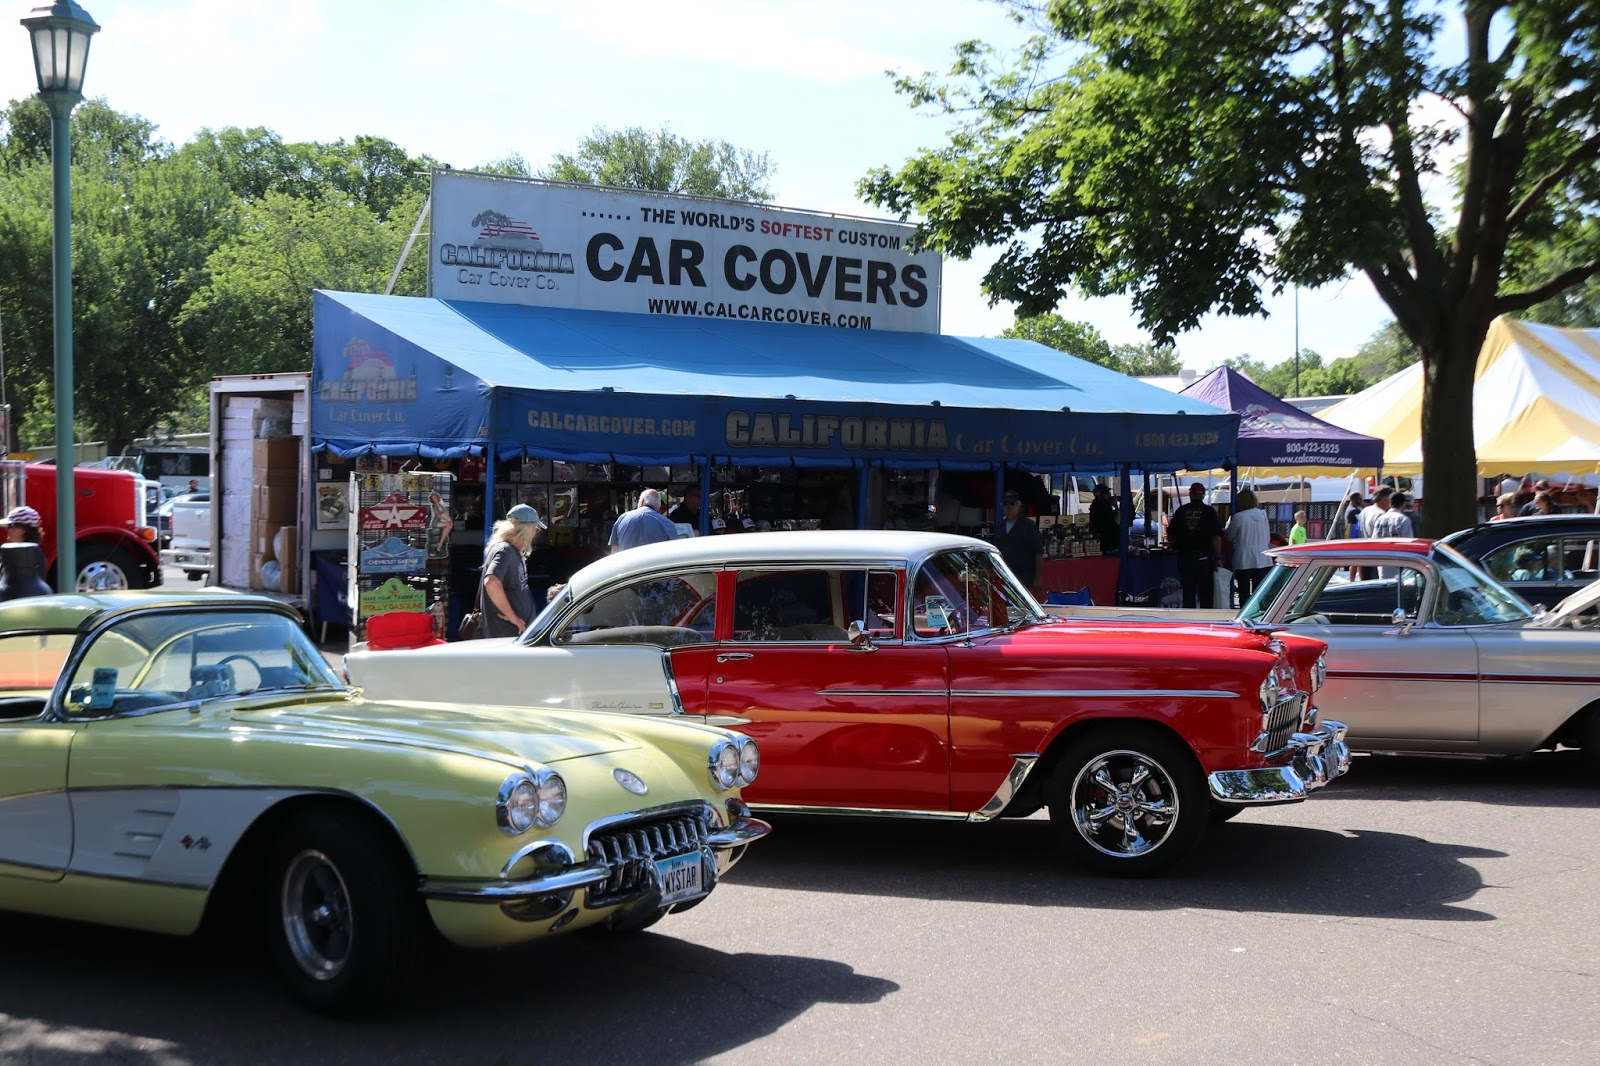 Covering Classic Cars : Back to the Fifties Car Show Weekend 2017 ...